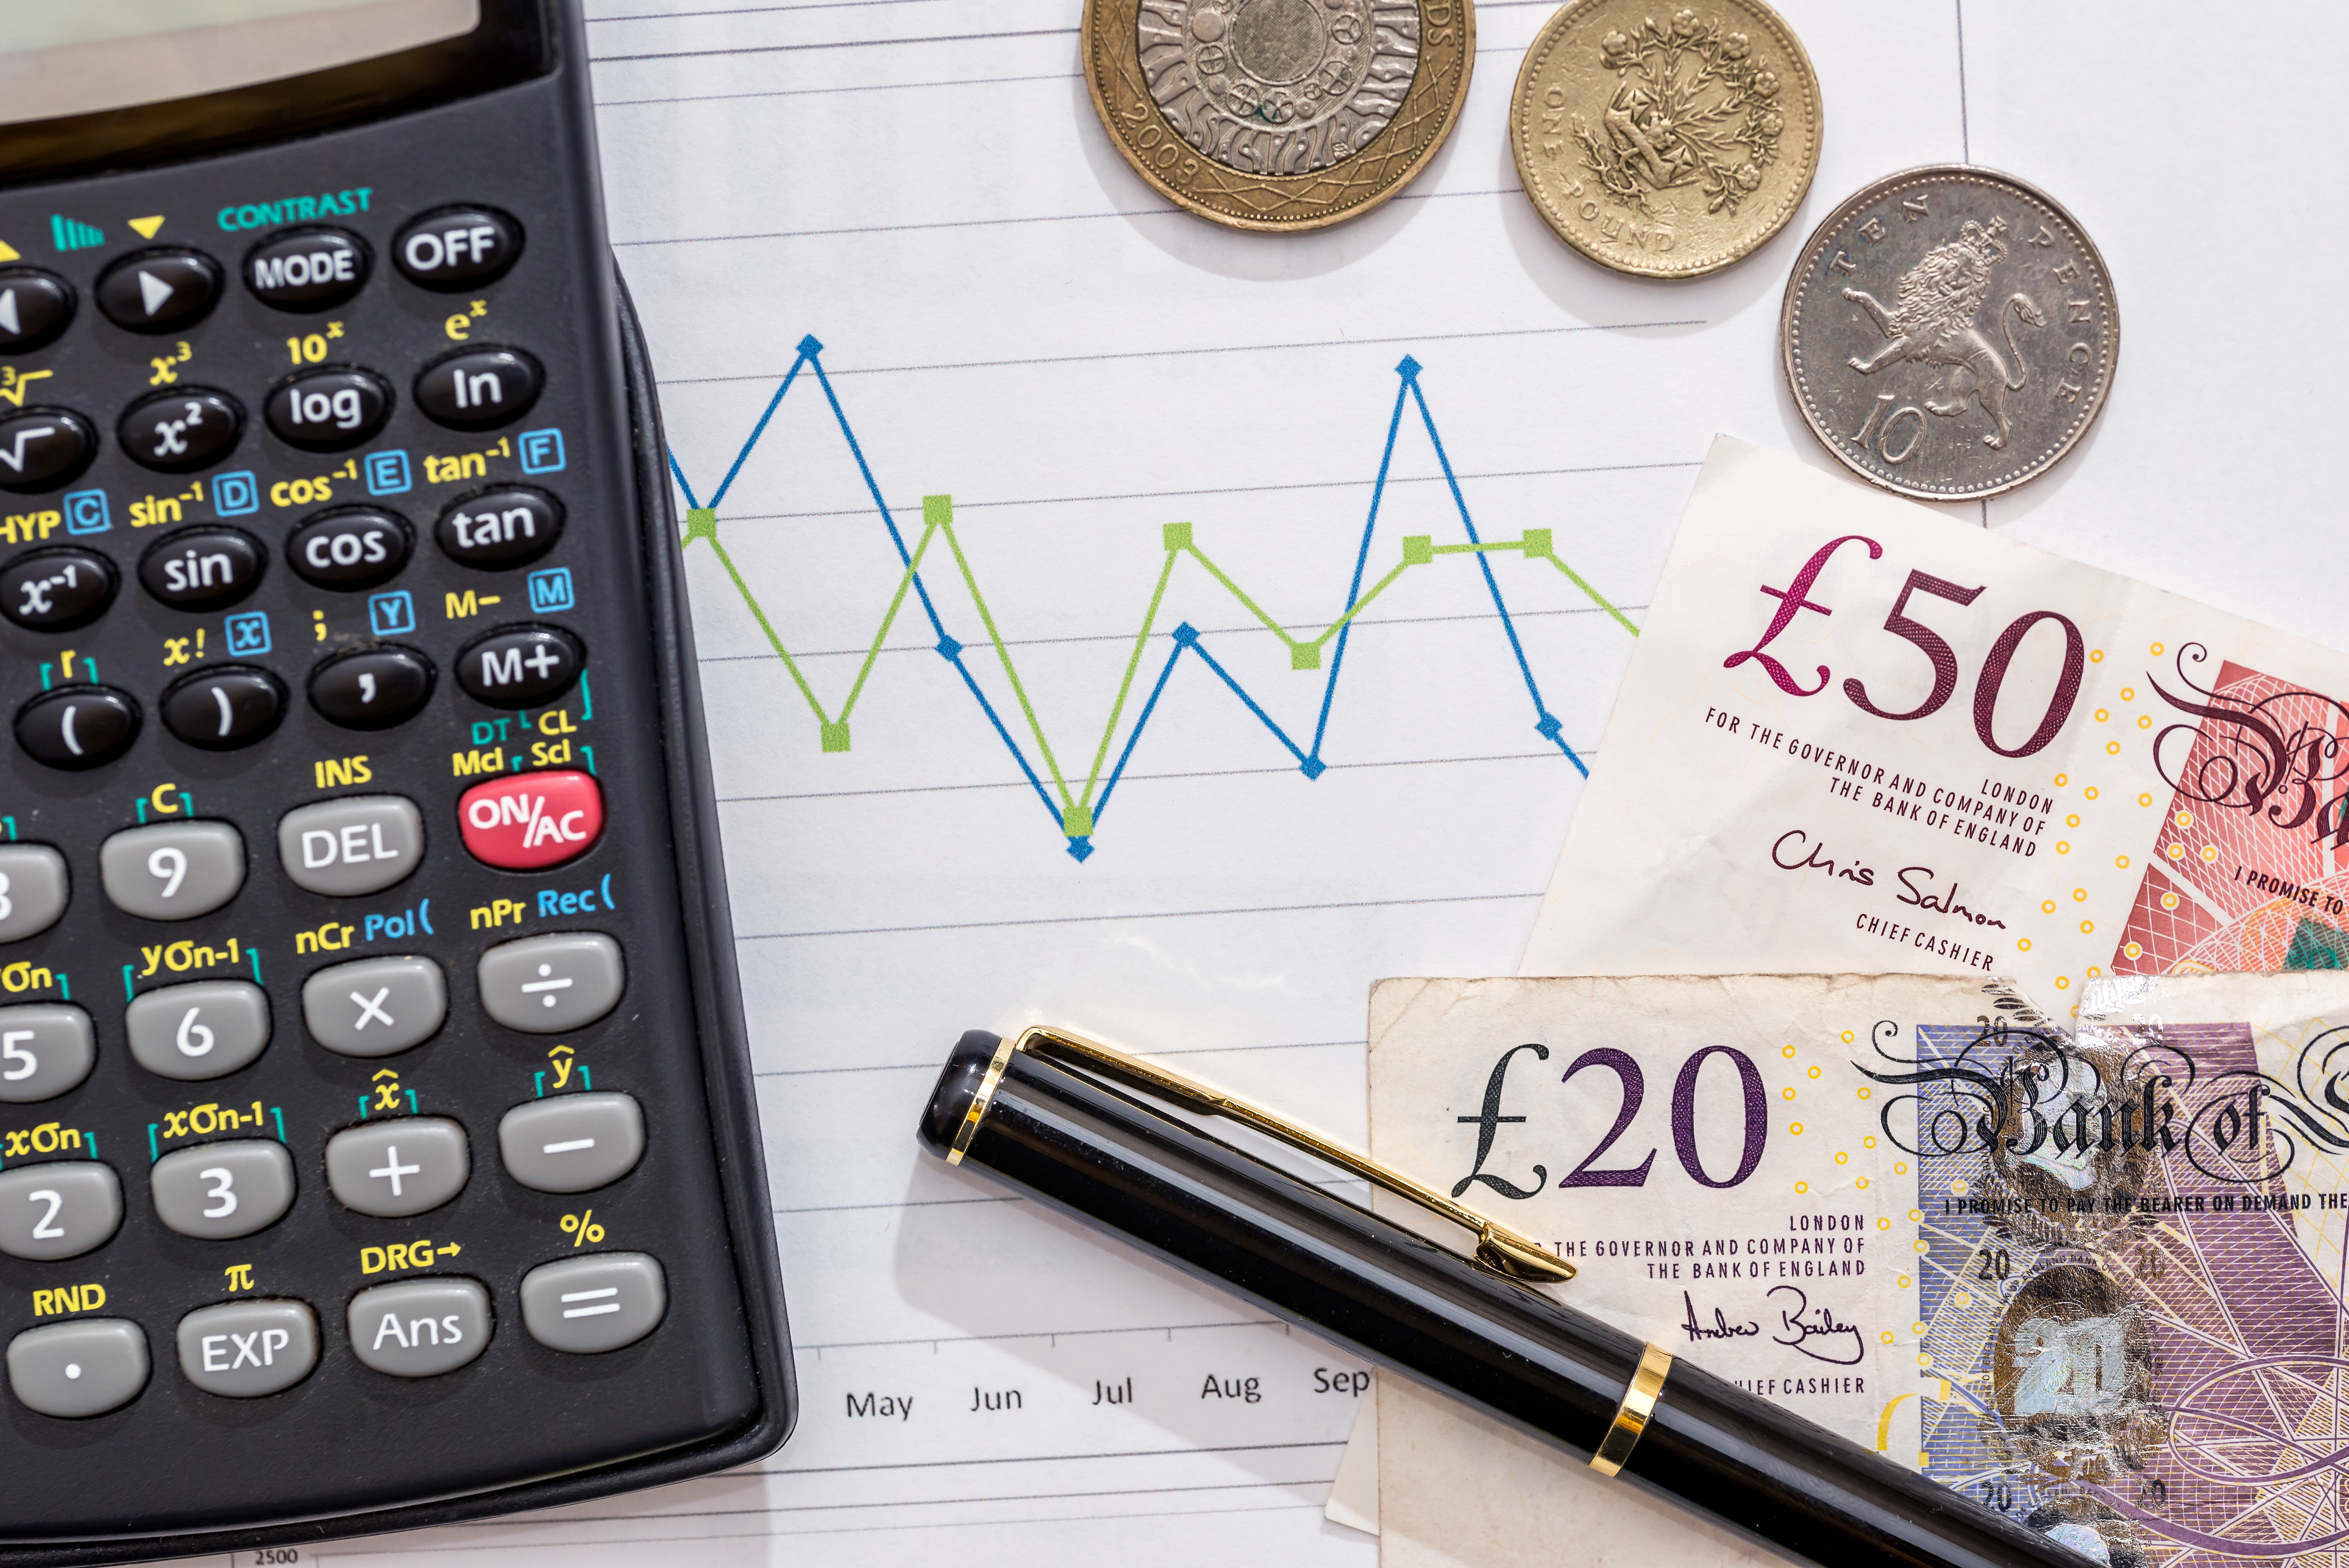 Managing your budget more effectively involves budgeting by department, planning ahead, and preparing for the worst